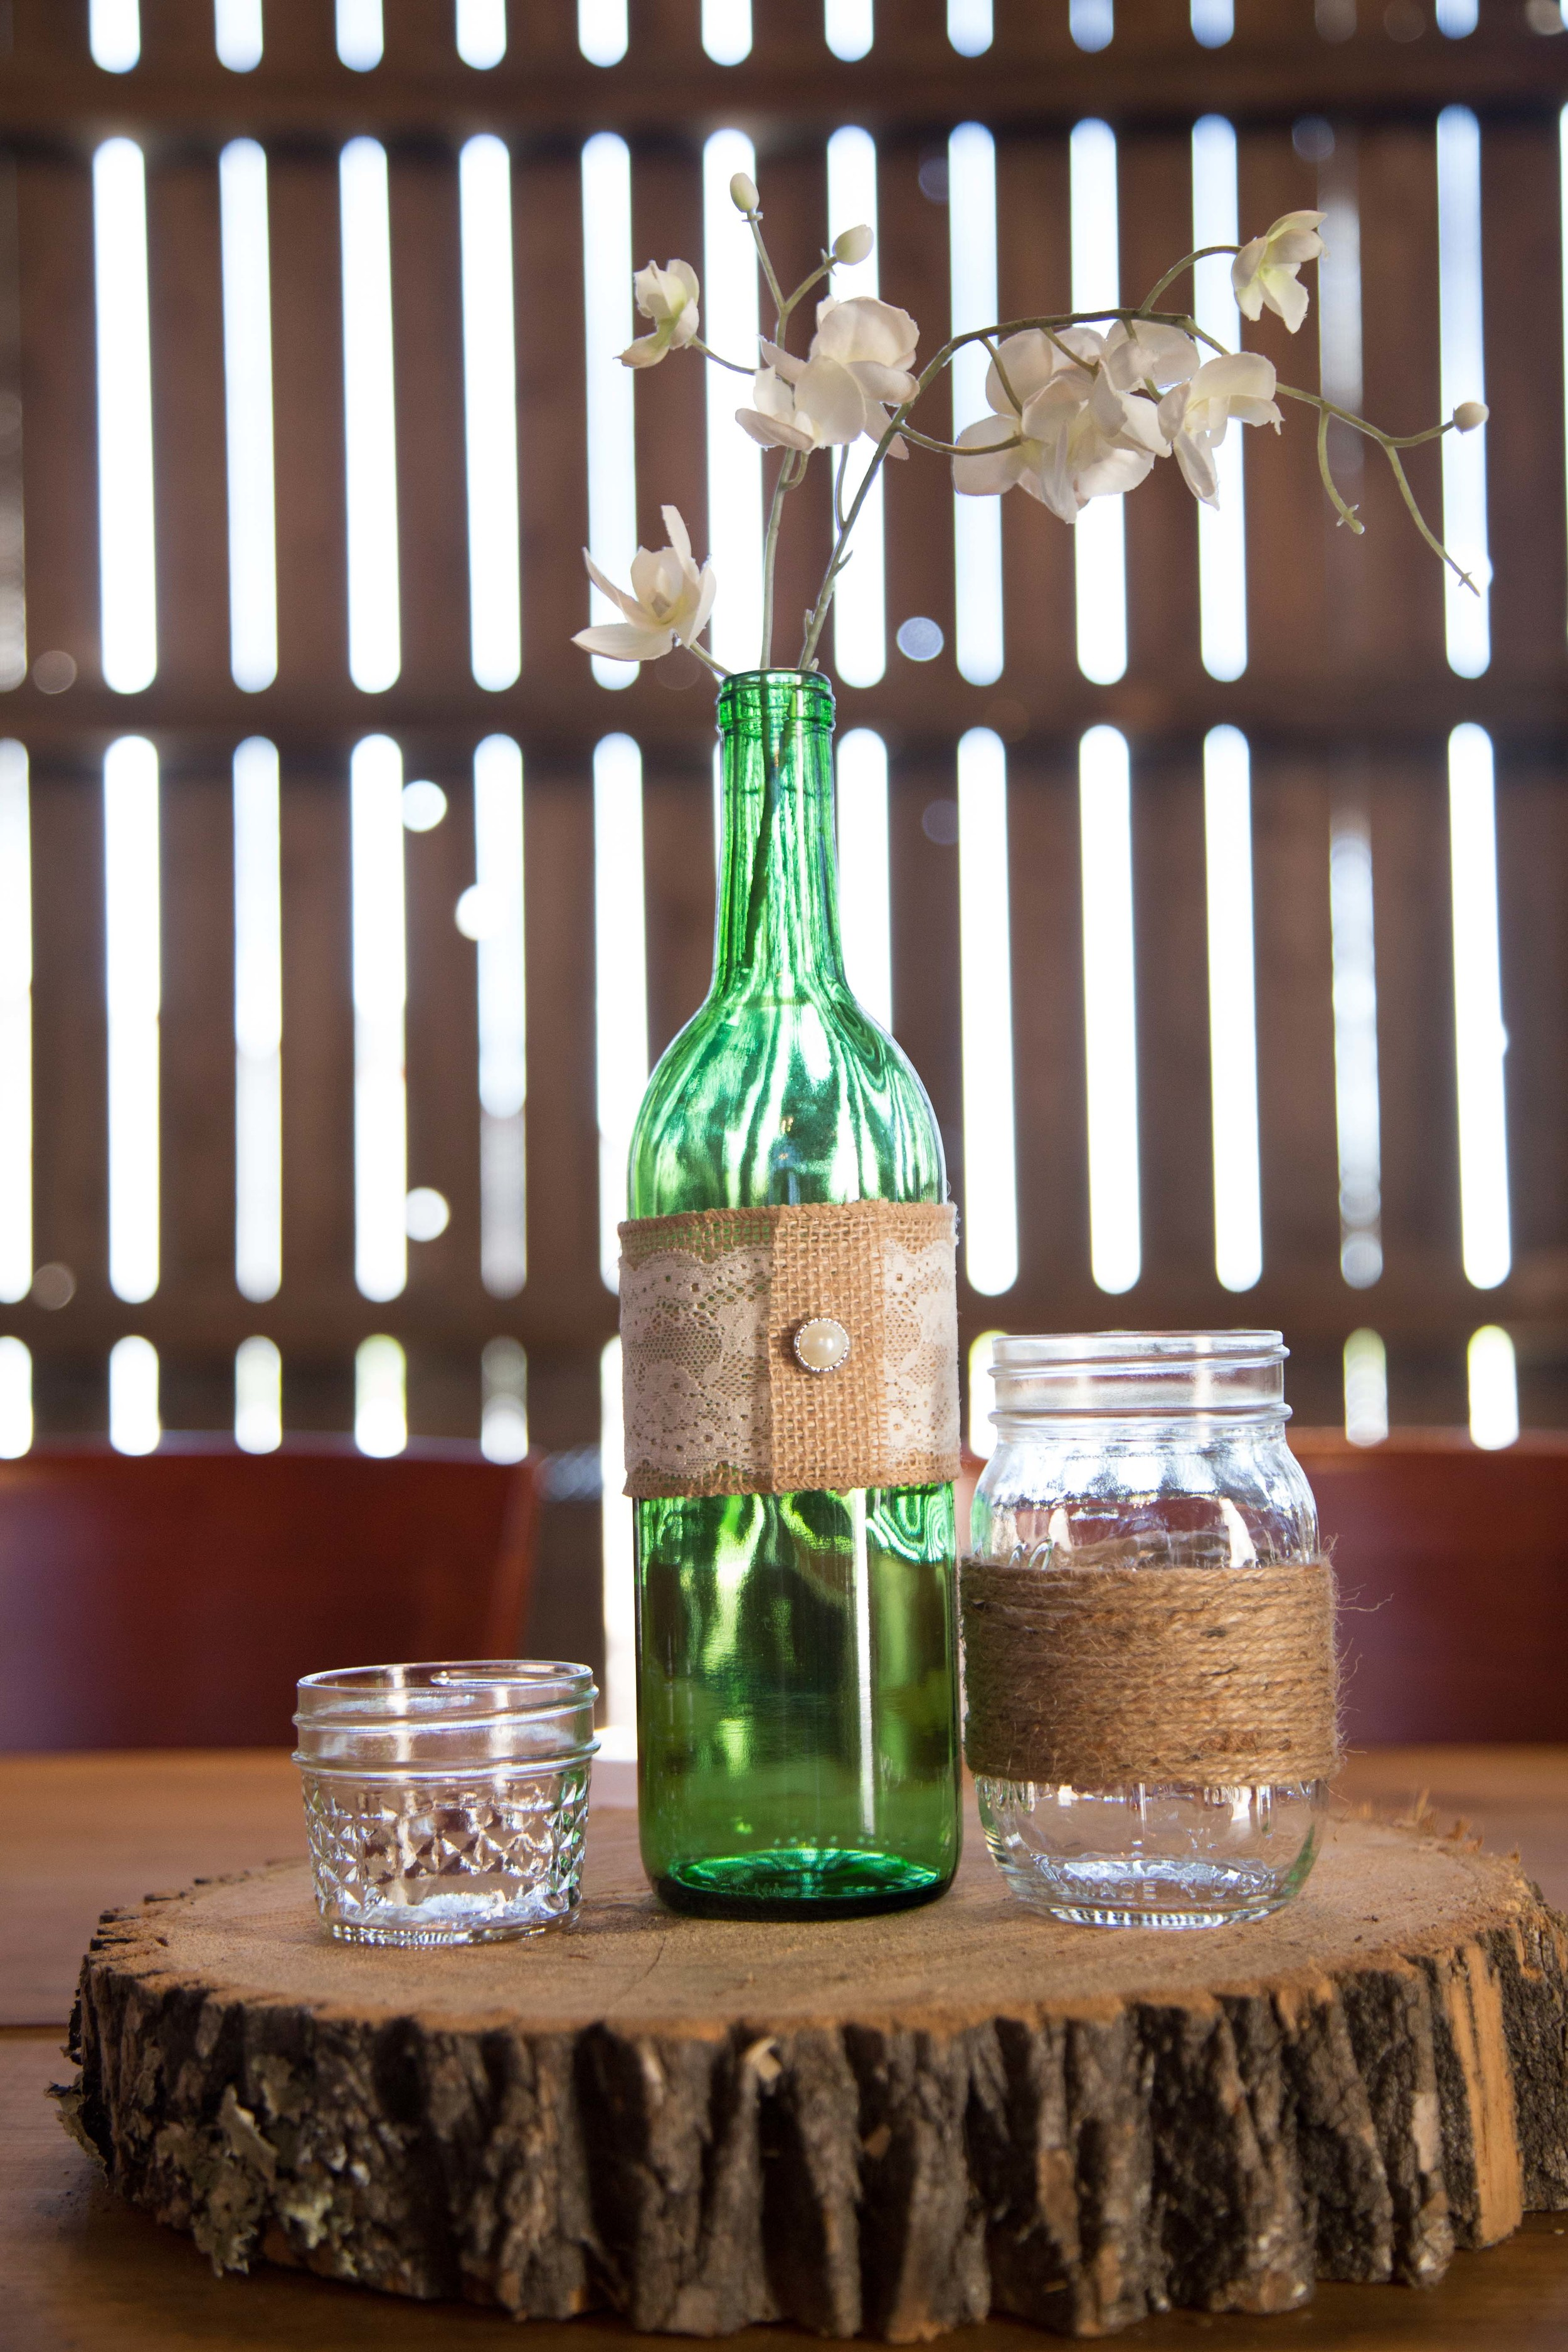 6_19-Barn_Table_Centerpiece2-3 2.jpg